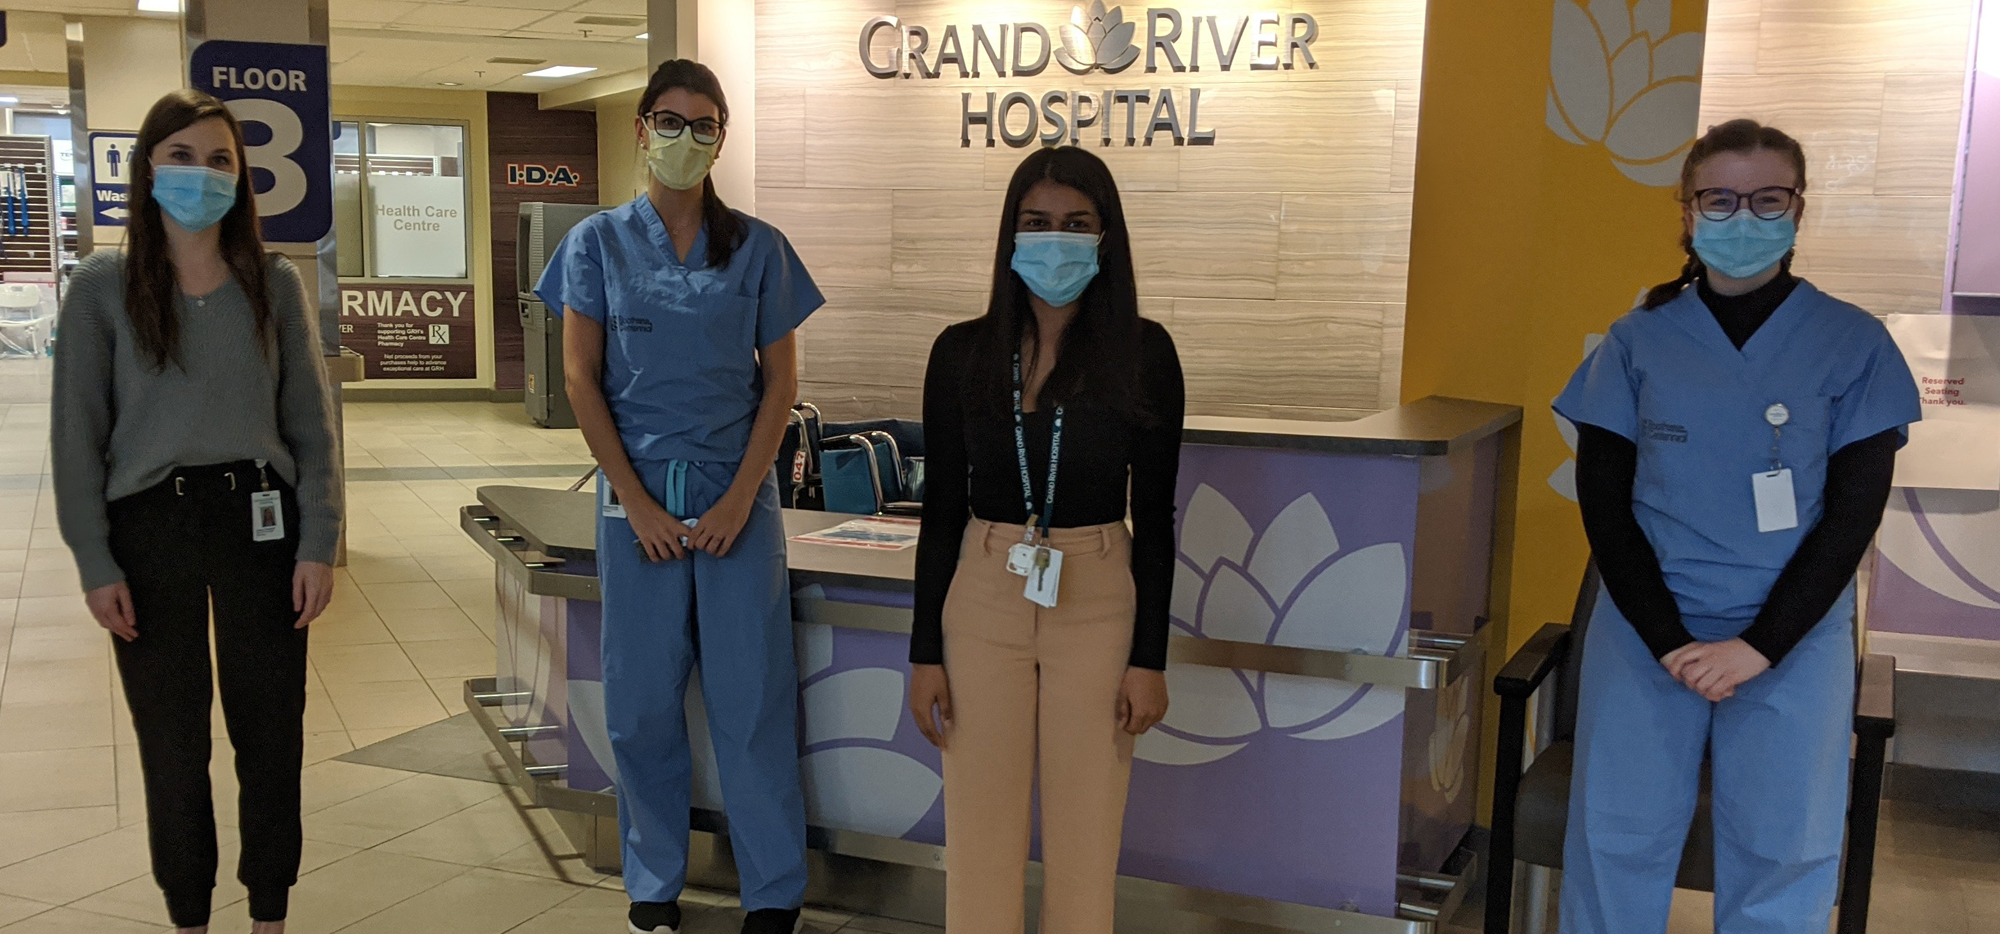 Students working at Grand River Hospital. Left to right: Lauren Thompson (Oncology), Melissa Garellek (Emergency Department), an